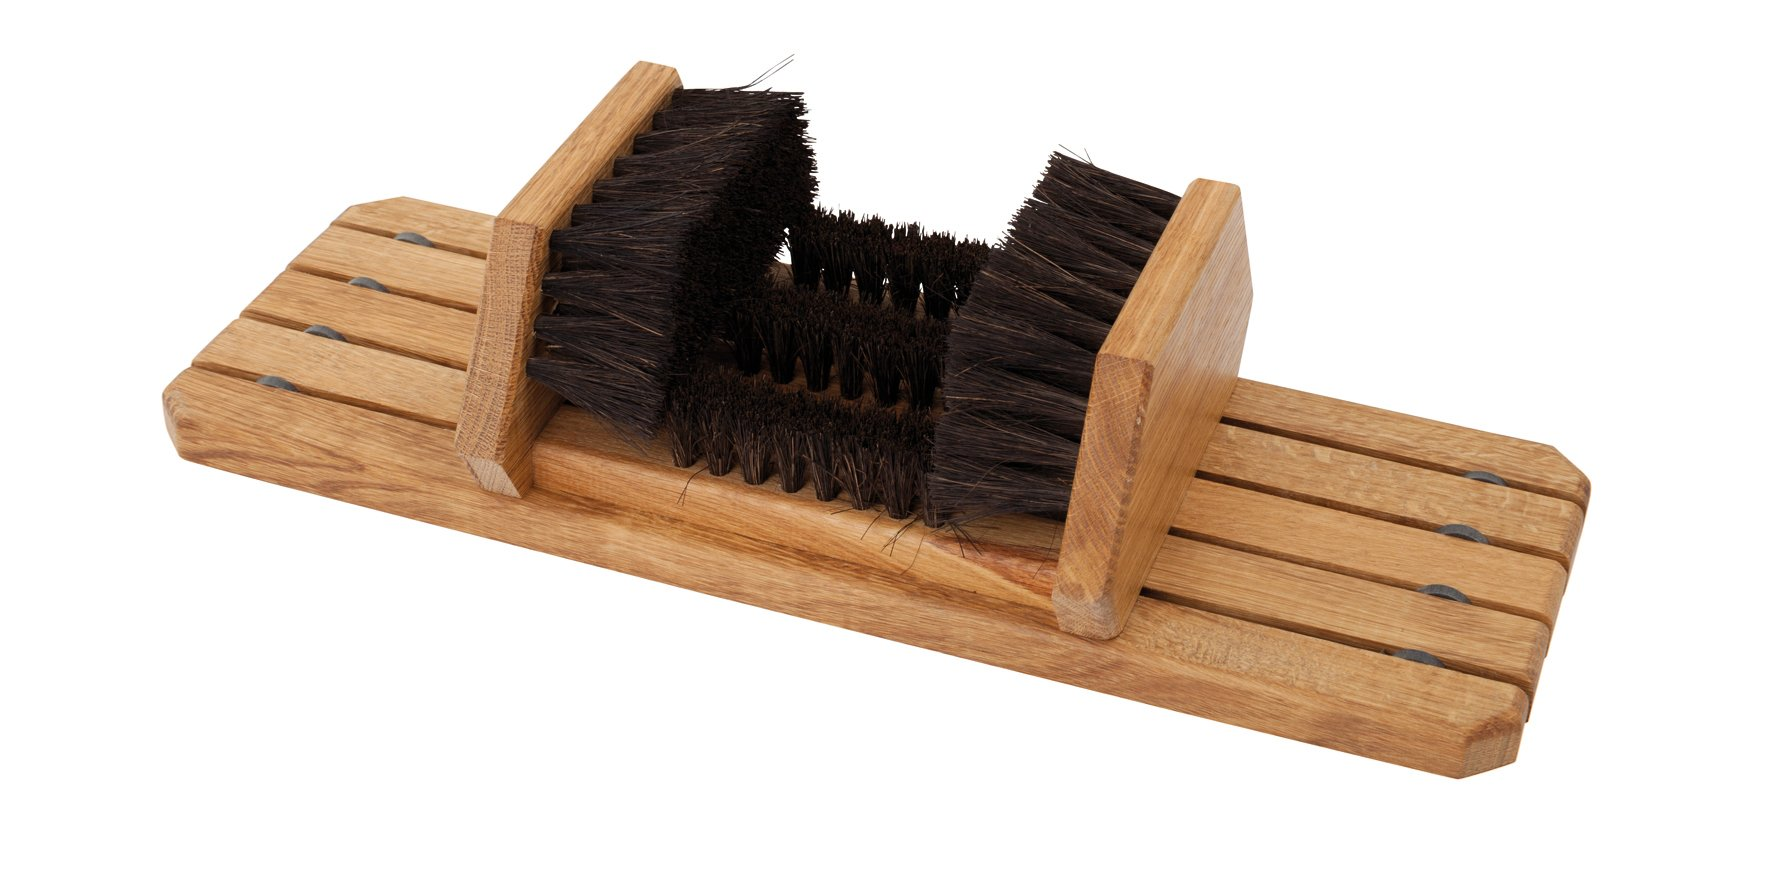 Redecker Arenga Fiber and Oiled Oakwood Boot and Shoe Brush Scraper, 20-1/2 x 7-1/4-Inches